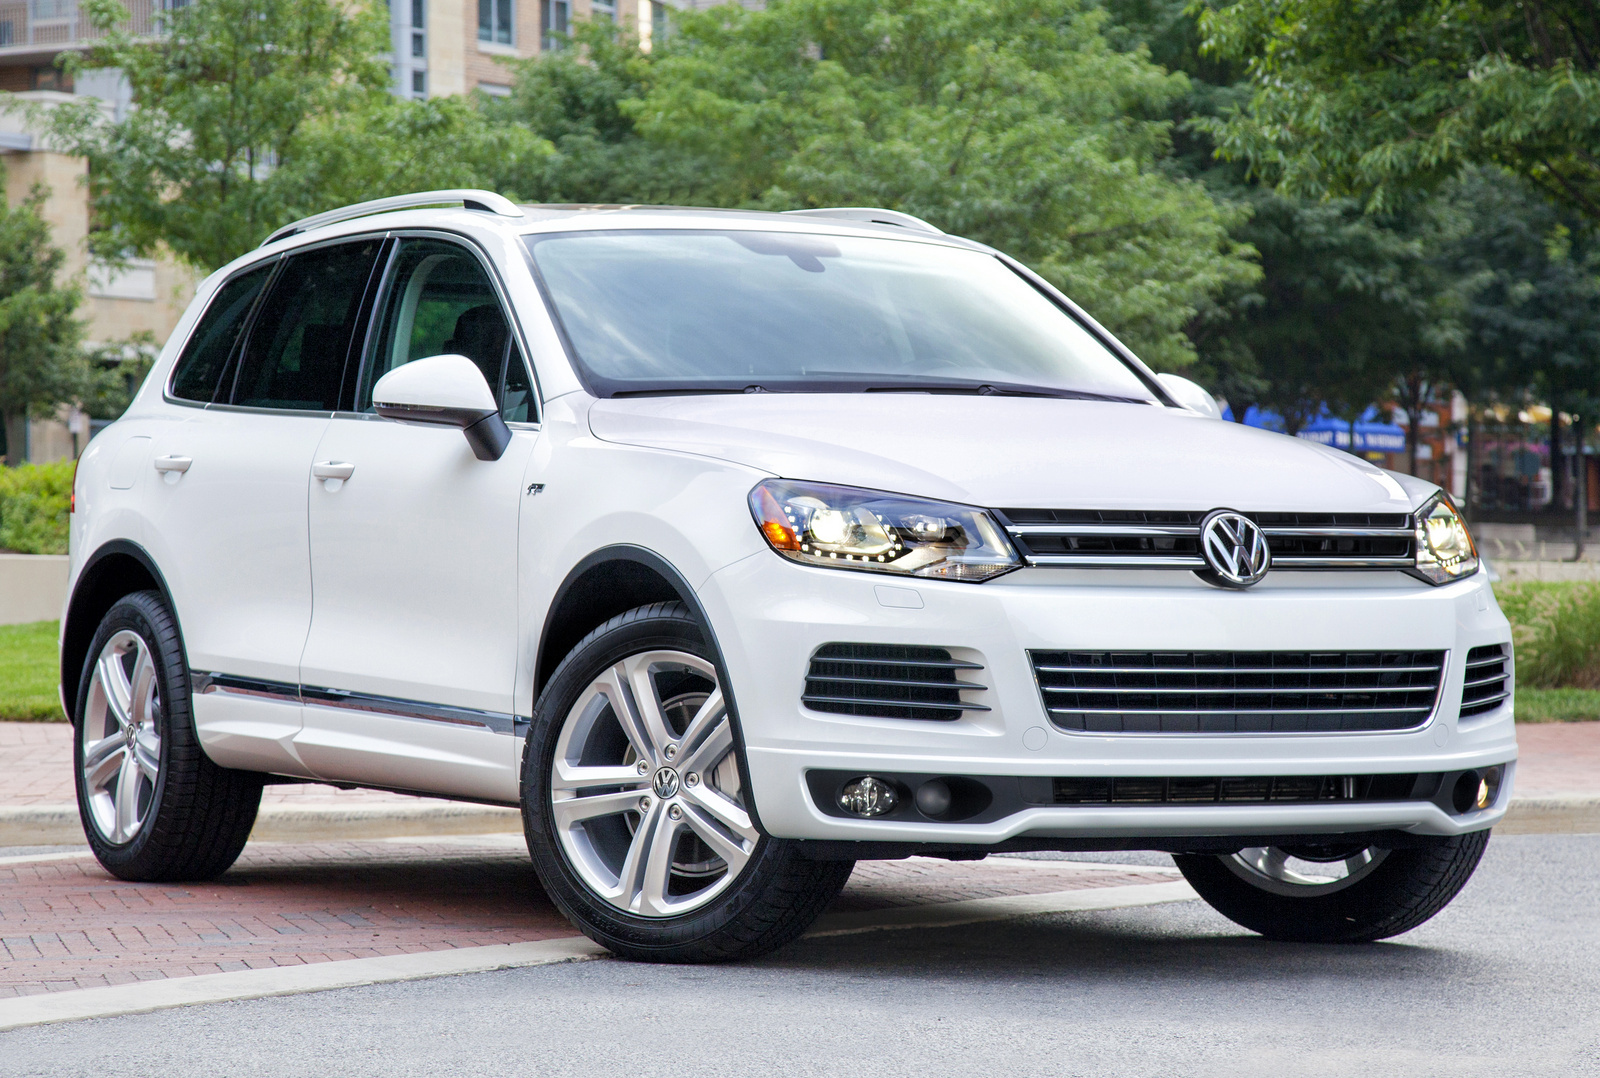 2014 volkswagen touareg overview cargurus. Black Bedroom Furniture Sets. Home Design Ideas